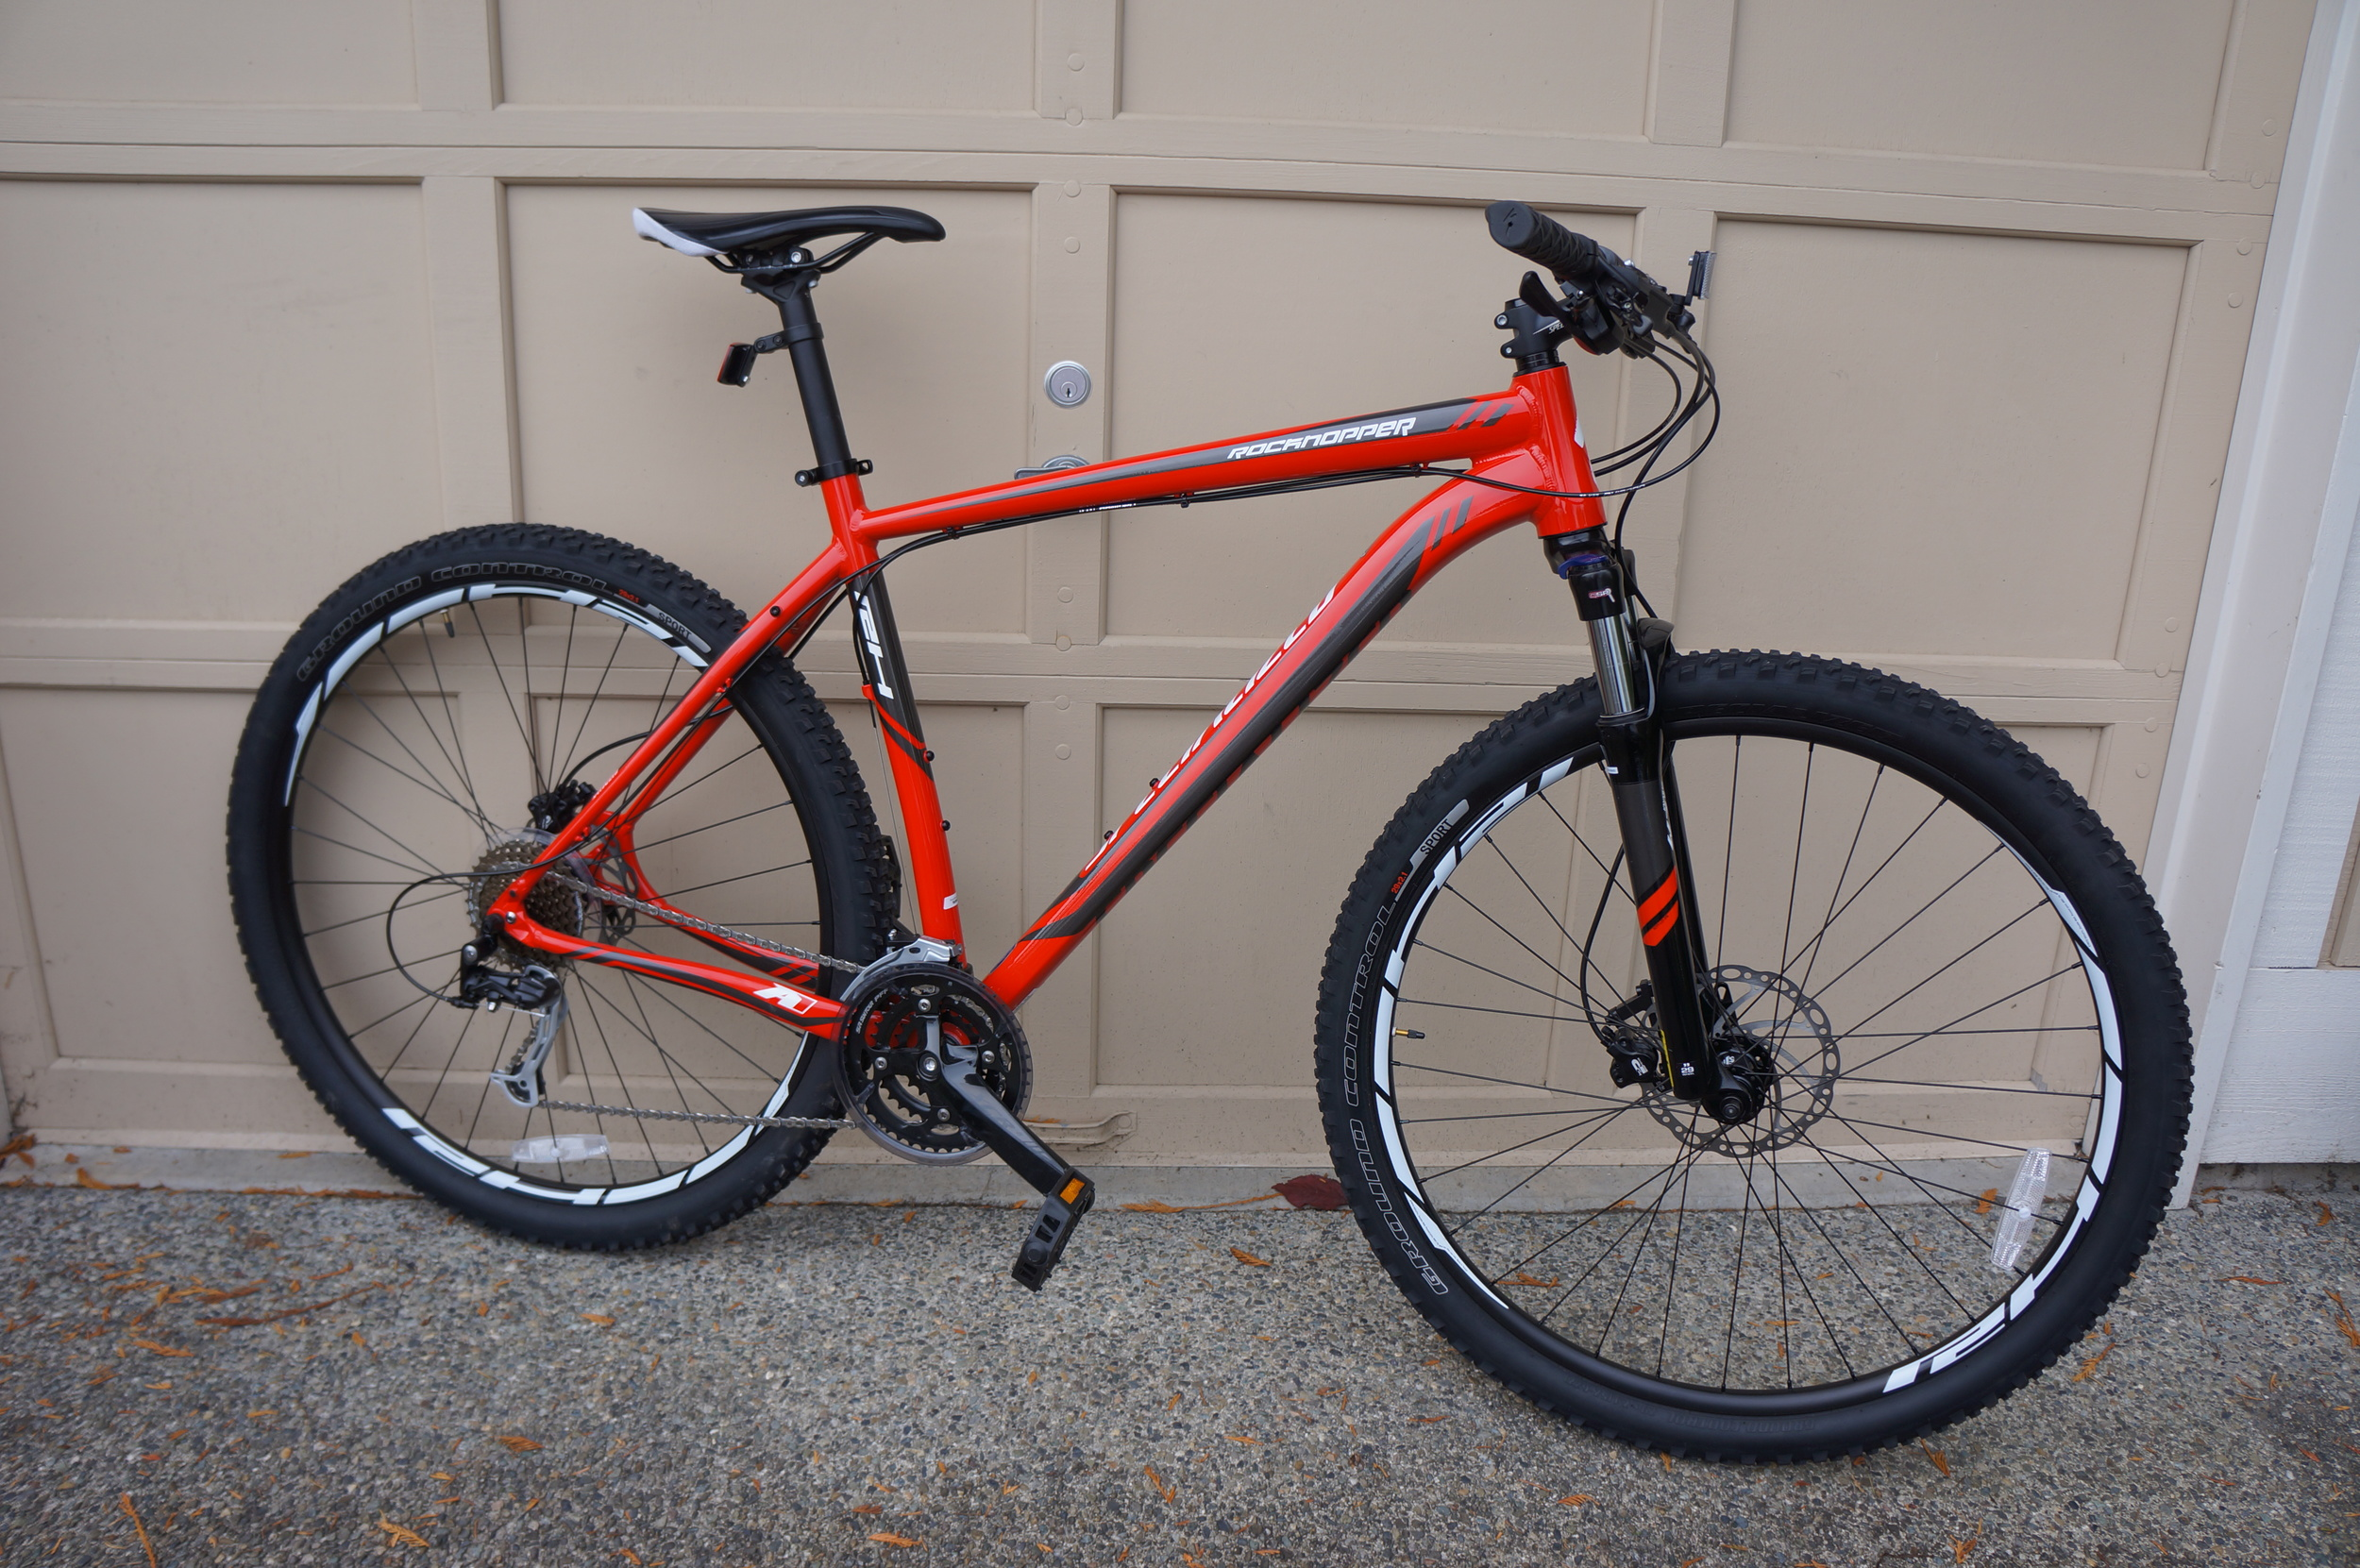 2014 Specialized RockHopper 29, my newest ride.